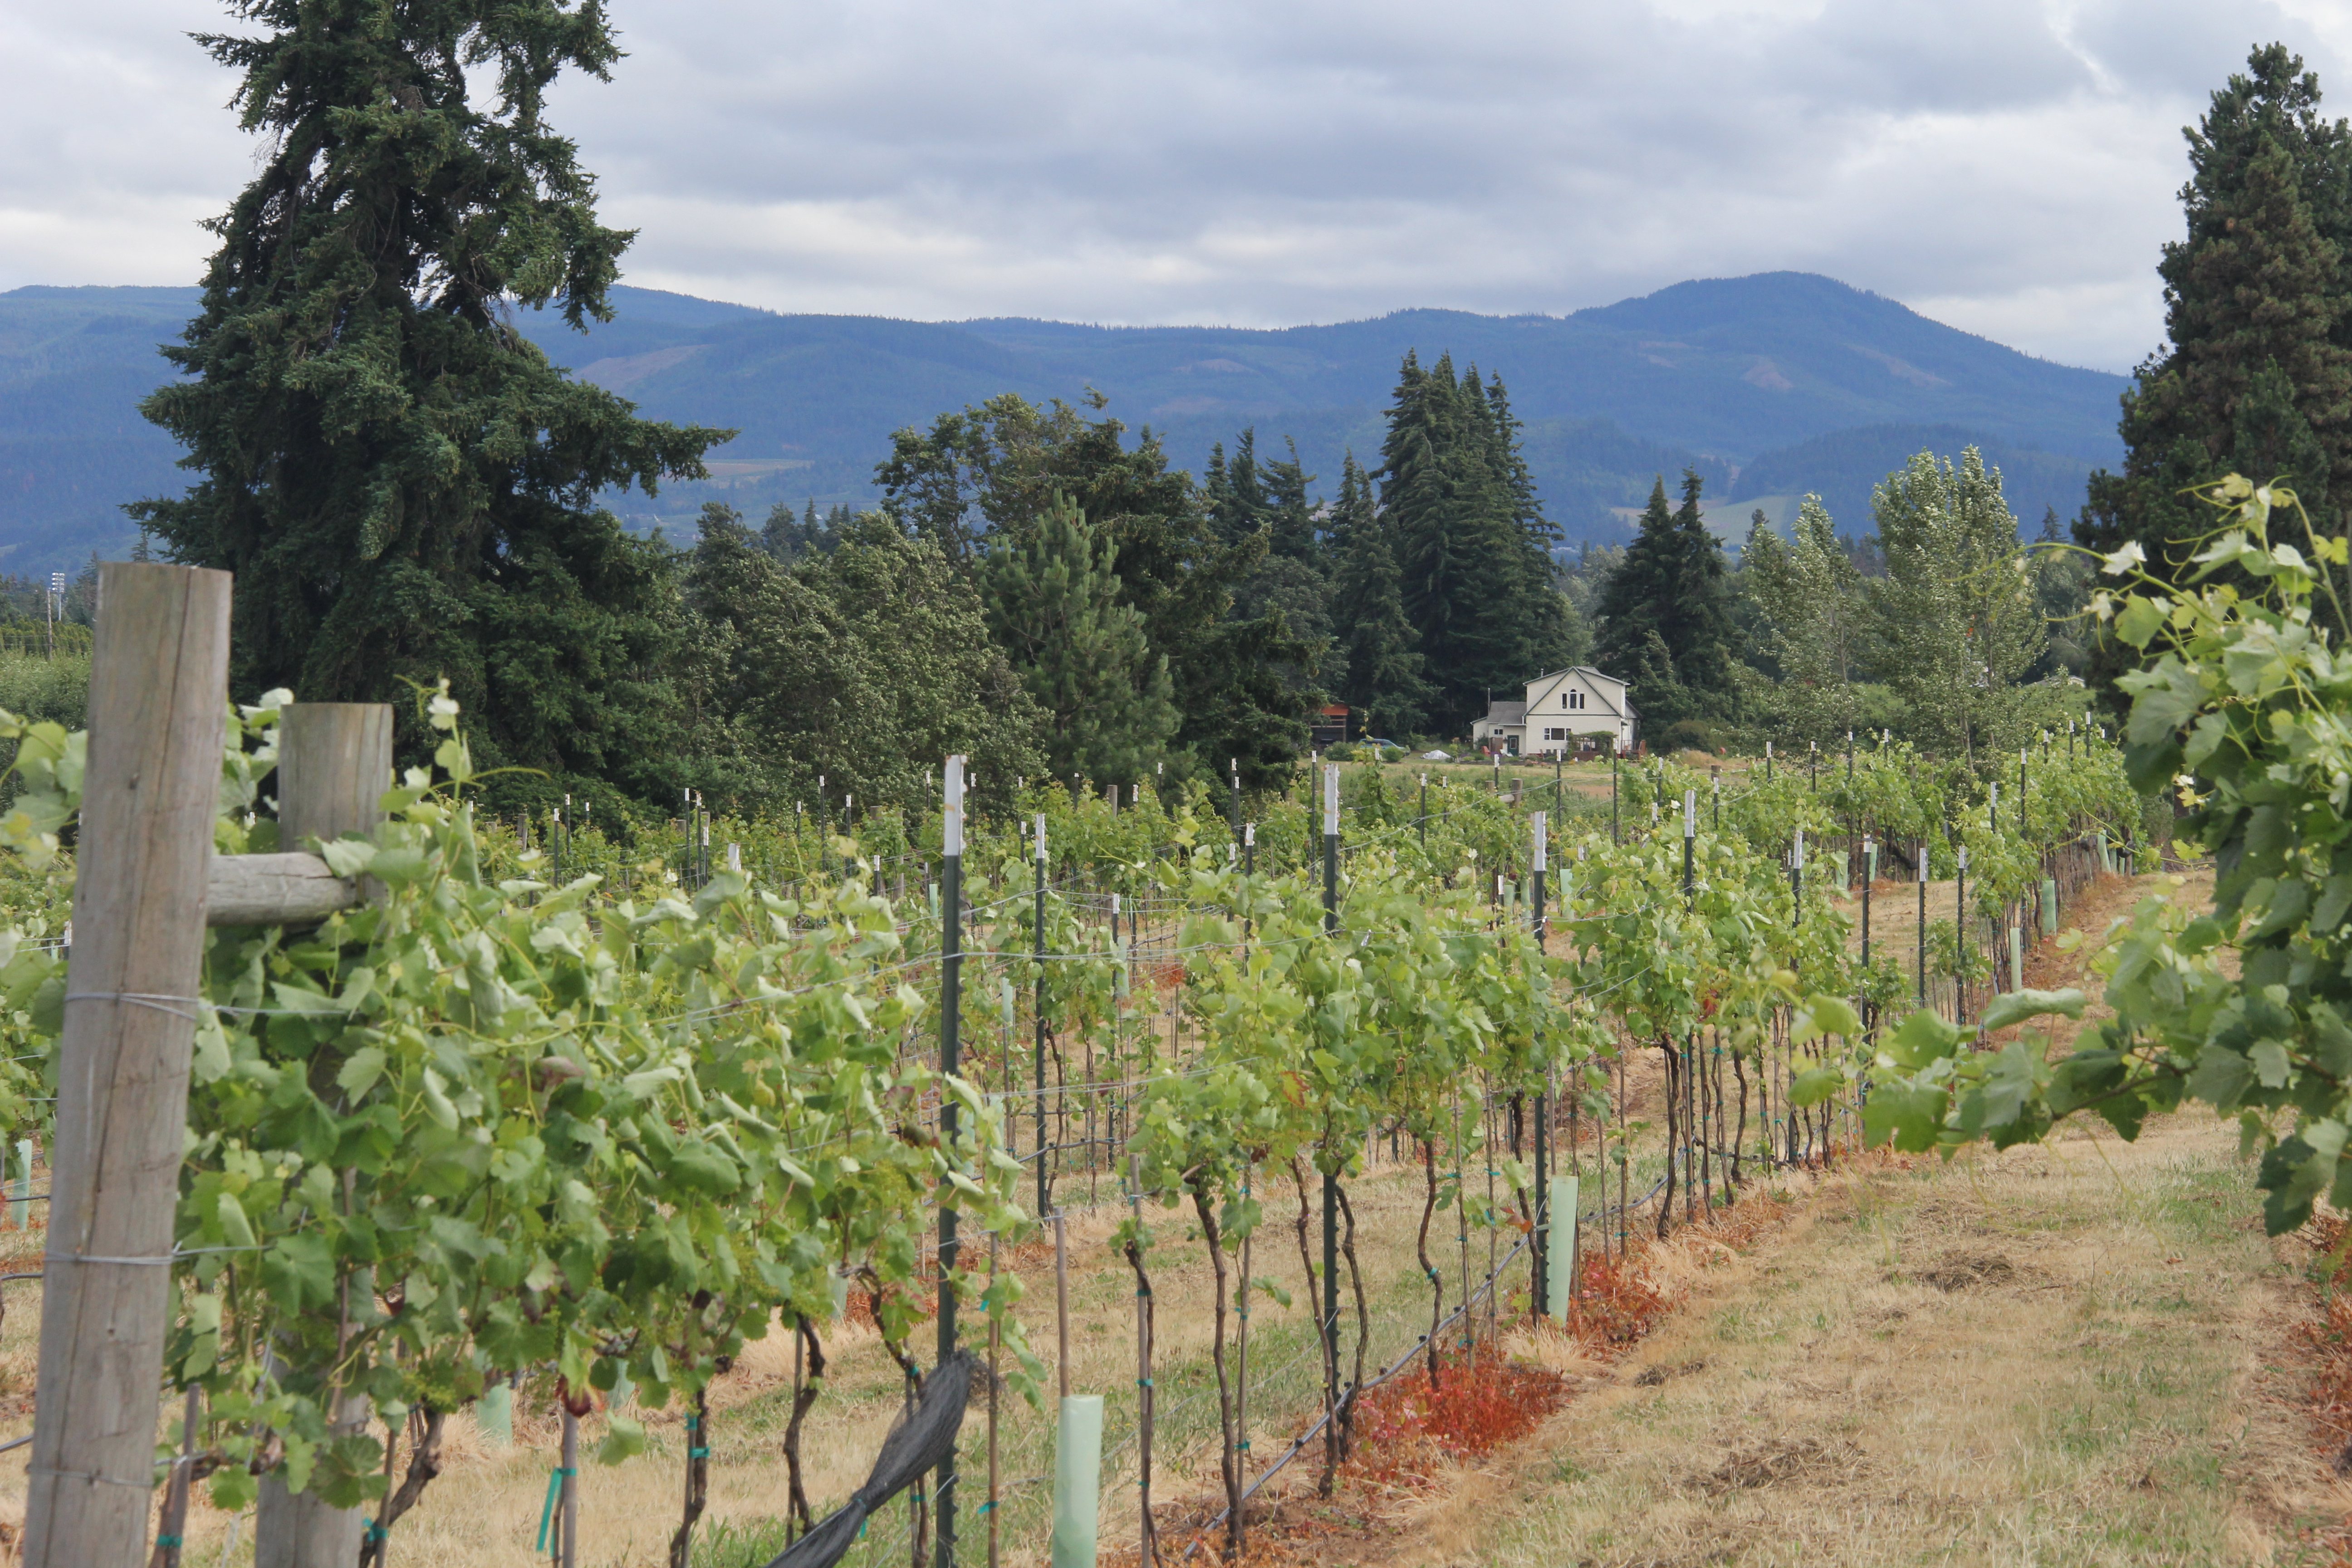 August 8, University of Georgia Cooperative Extension will host a tour of four northeast Georgia vineyards, focusing on the cultivation practices and grape varieties that have made Georgia's burgeoning wine industry possible.